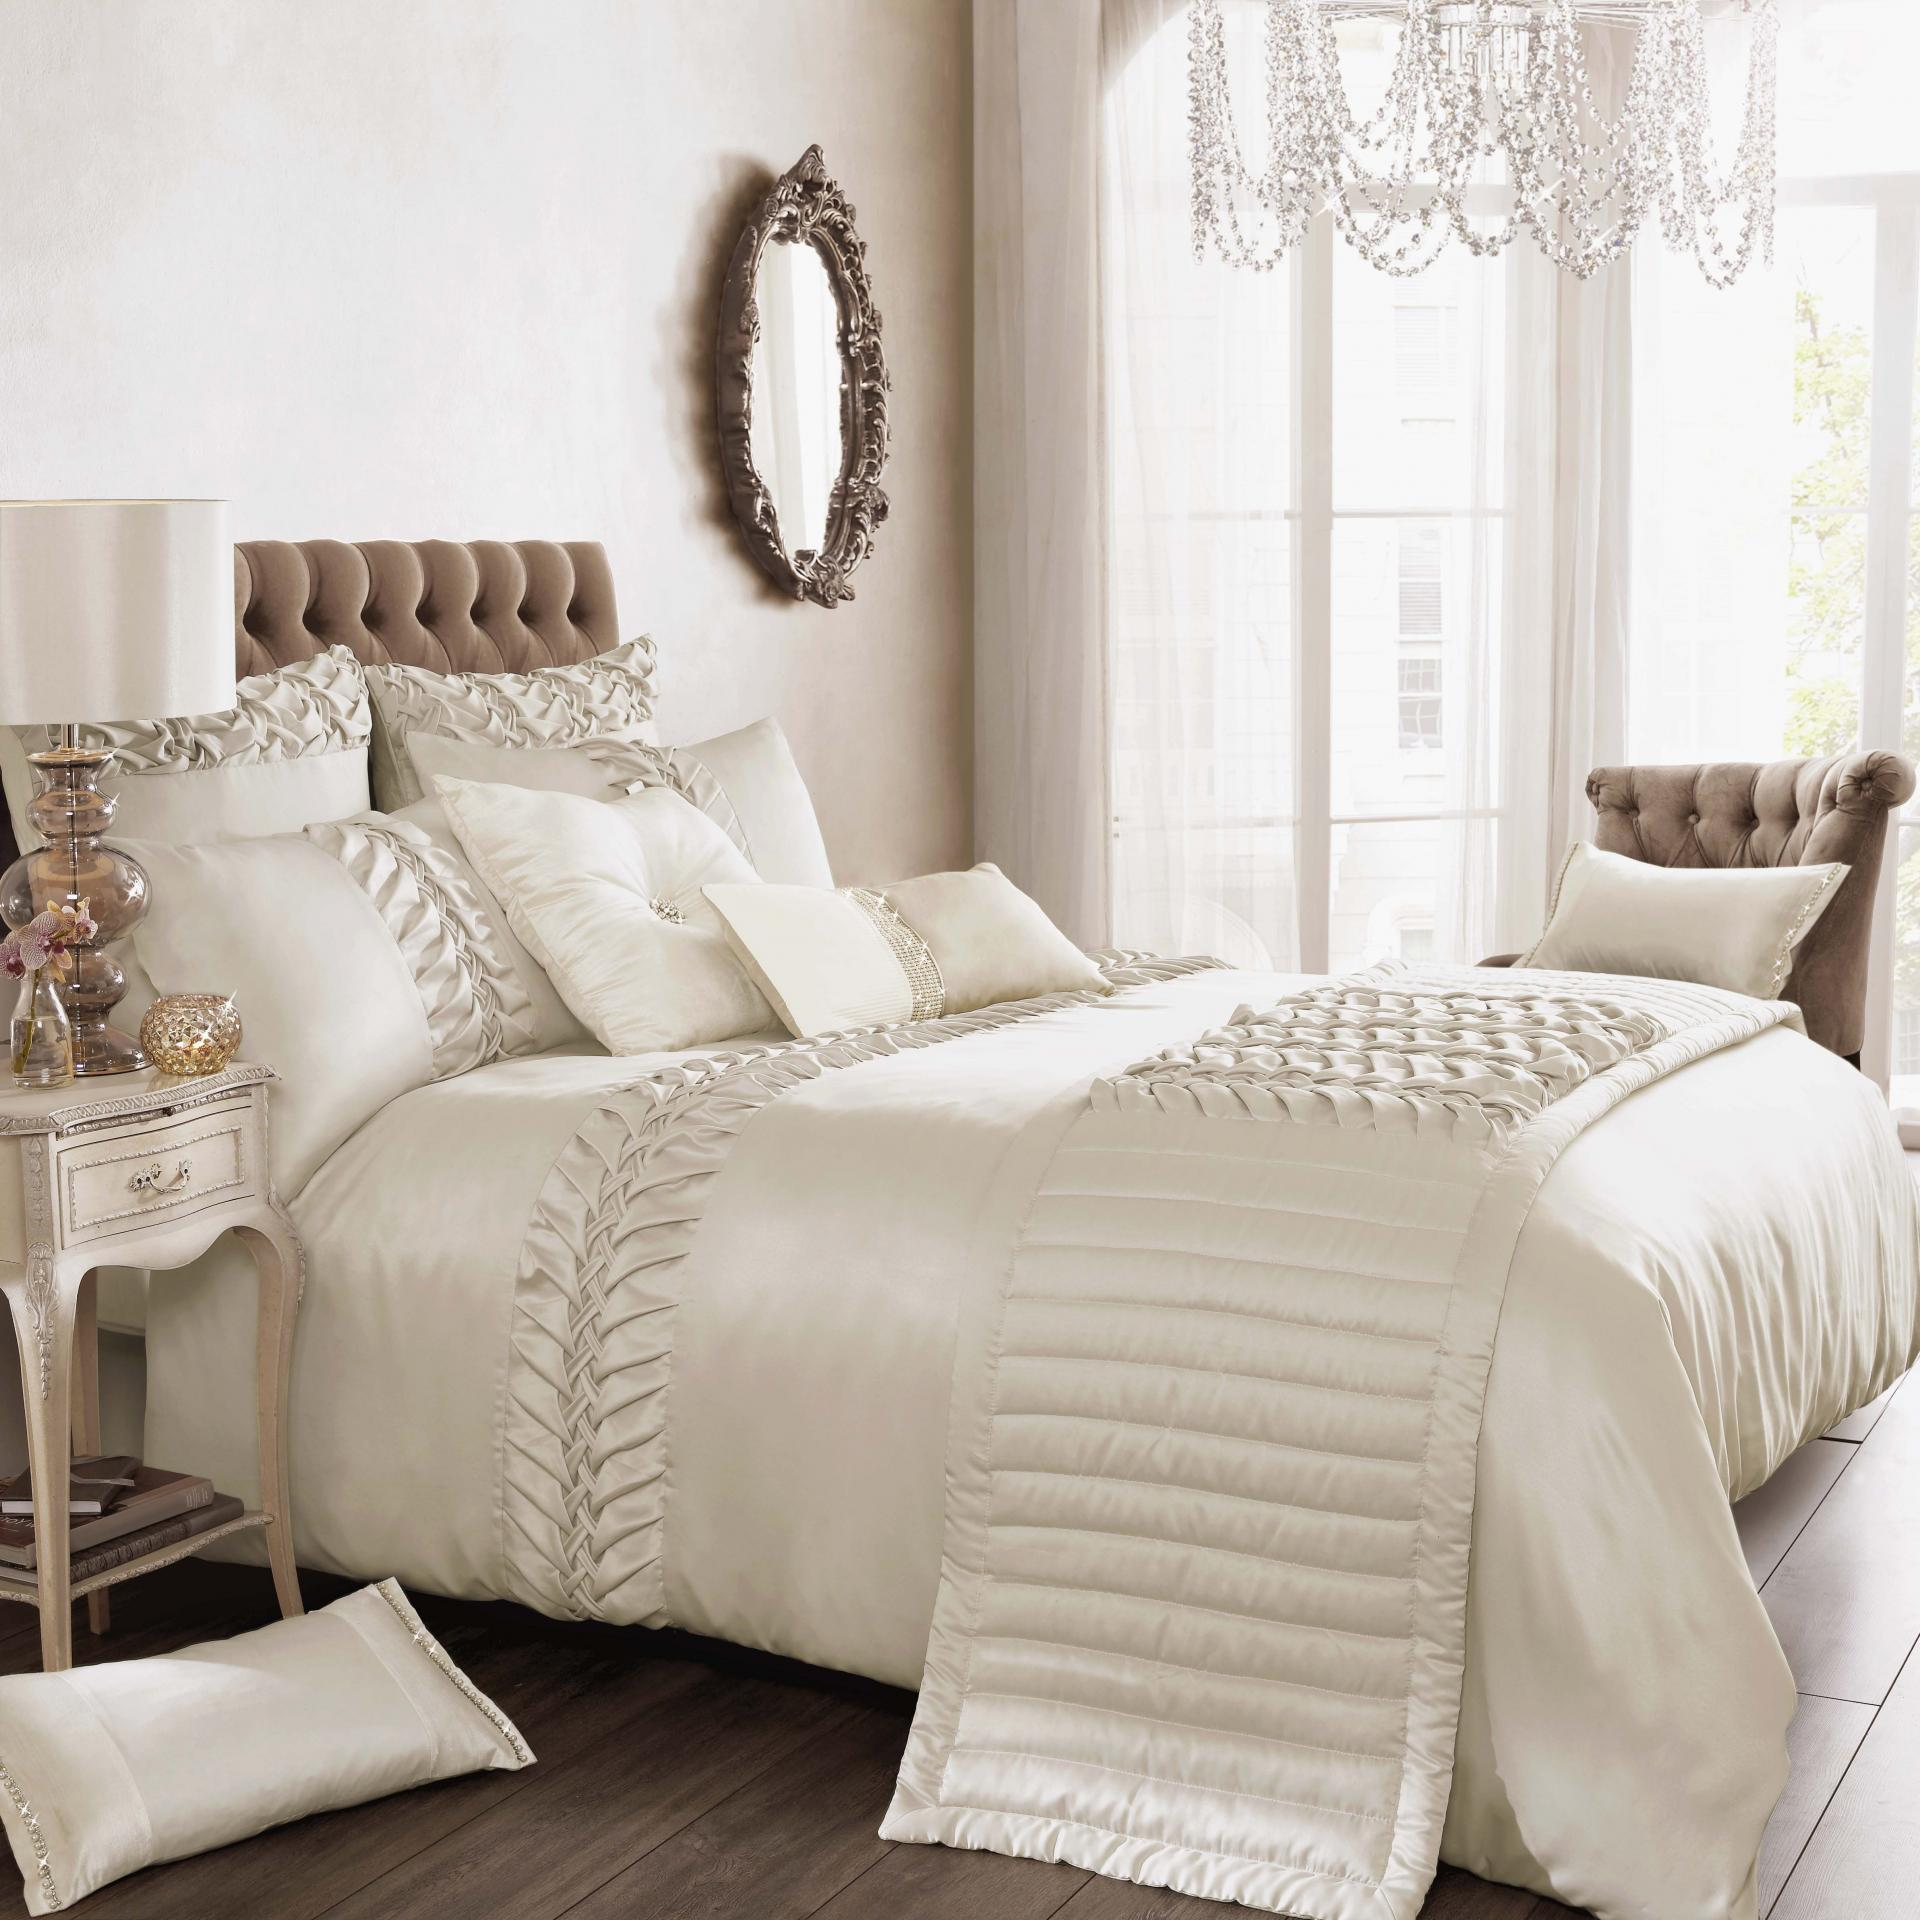 So why not invest in a luxury bedding set? With a few things that you ...